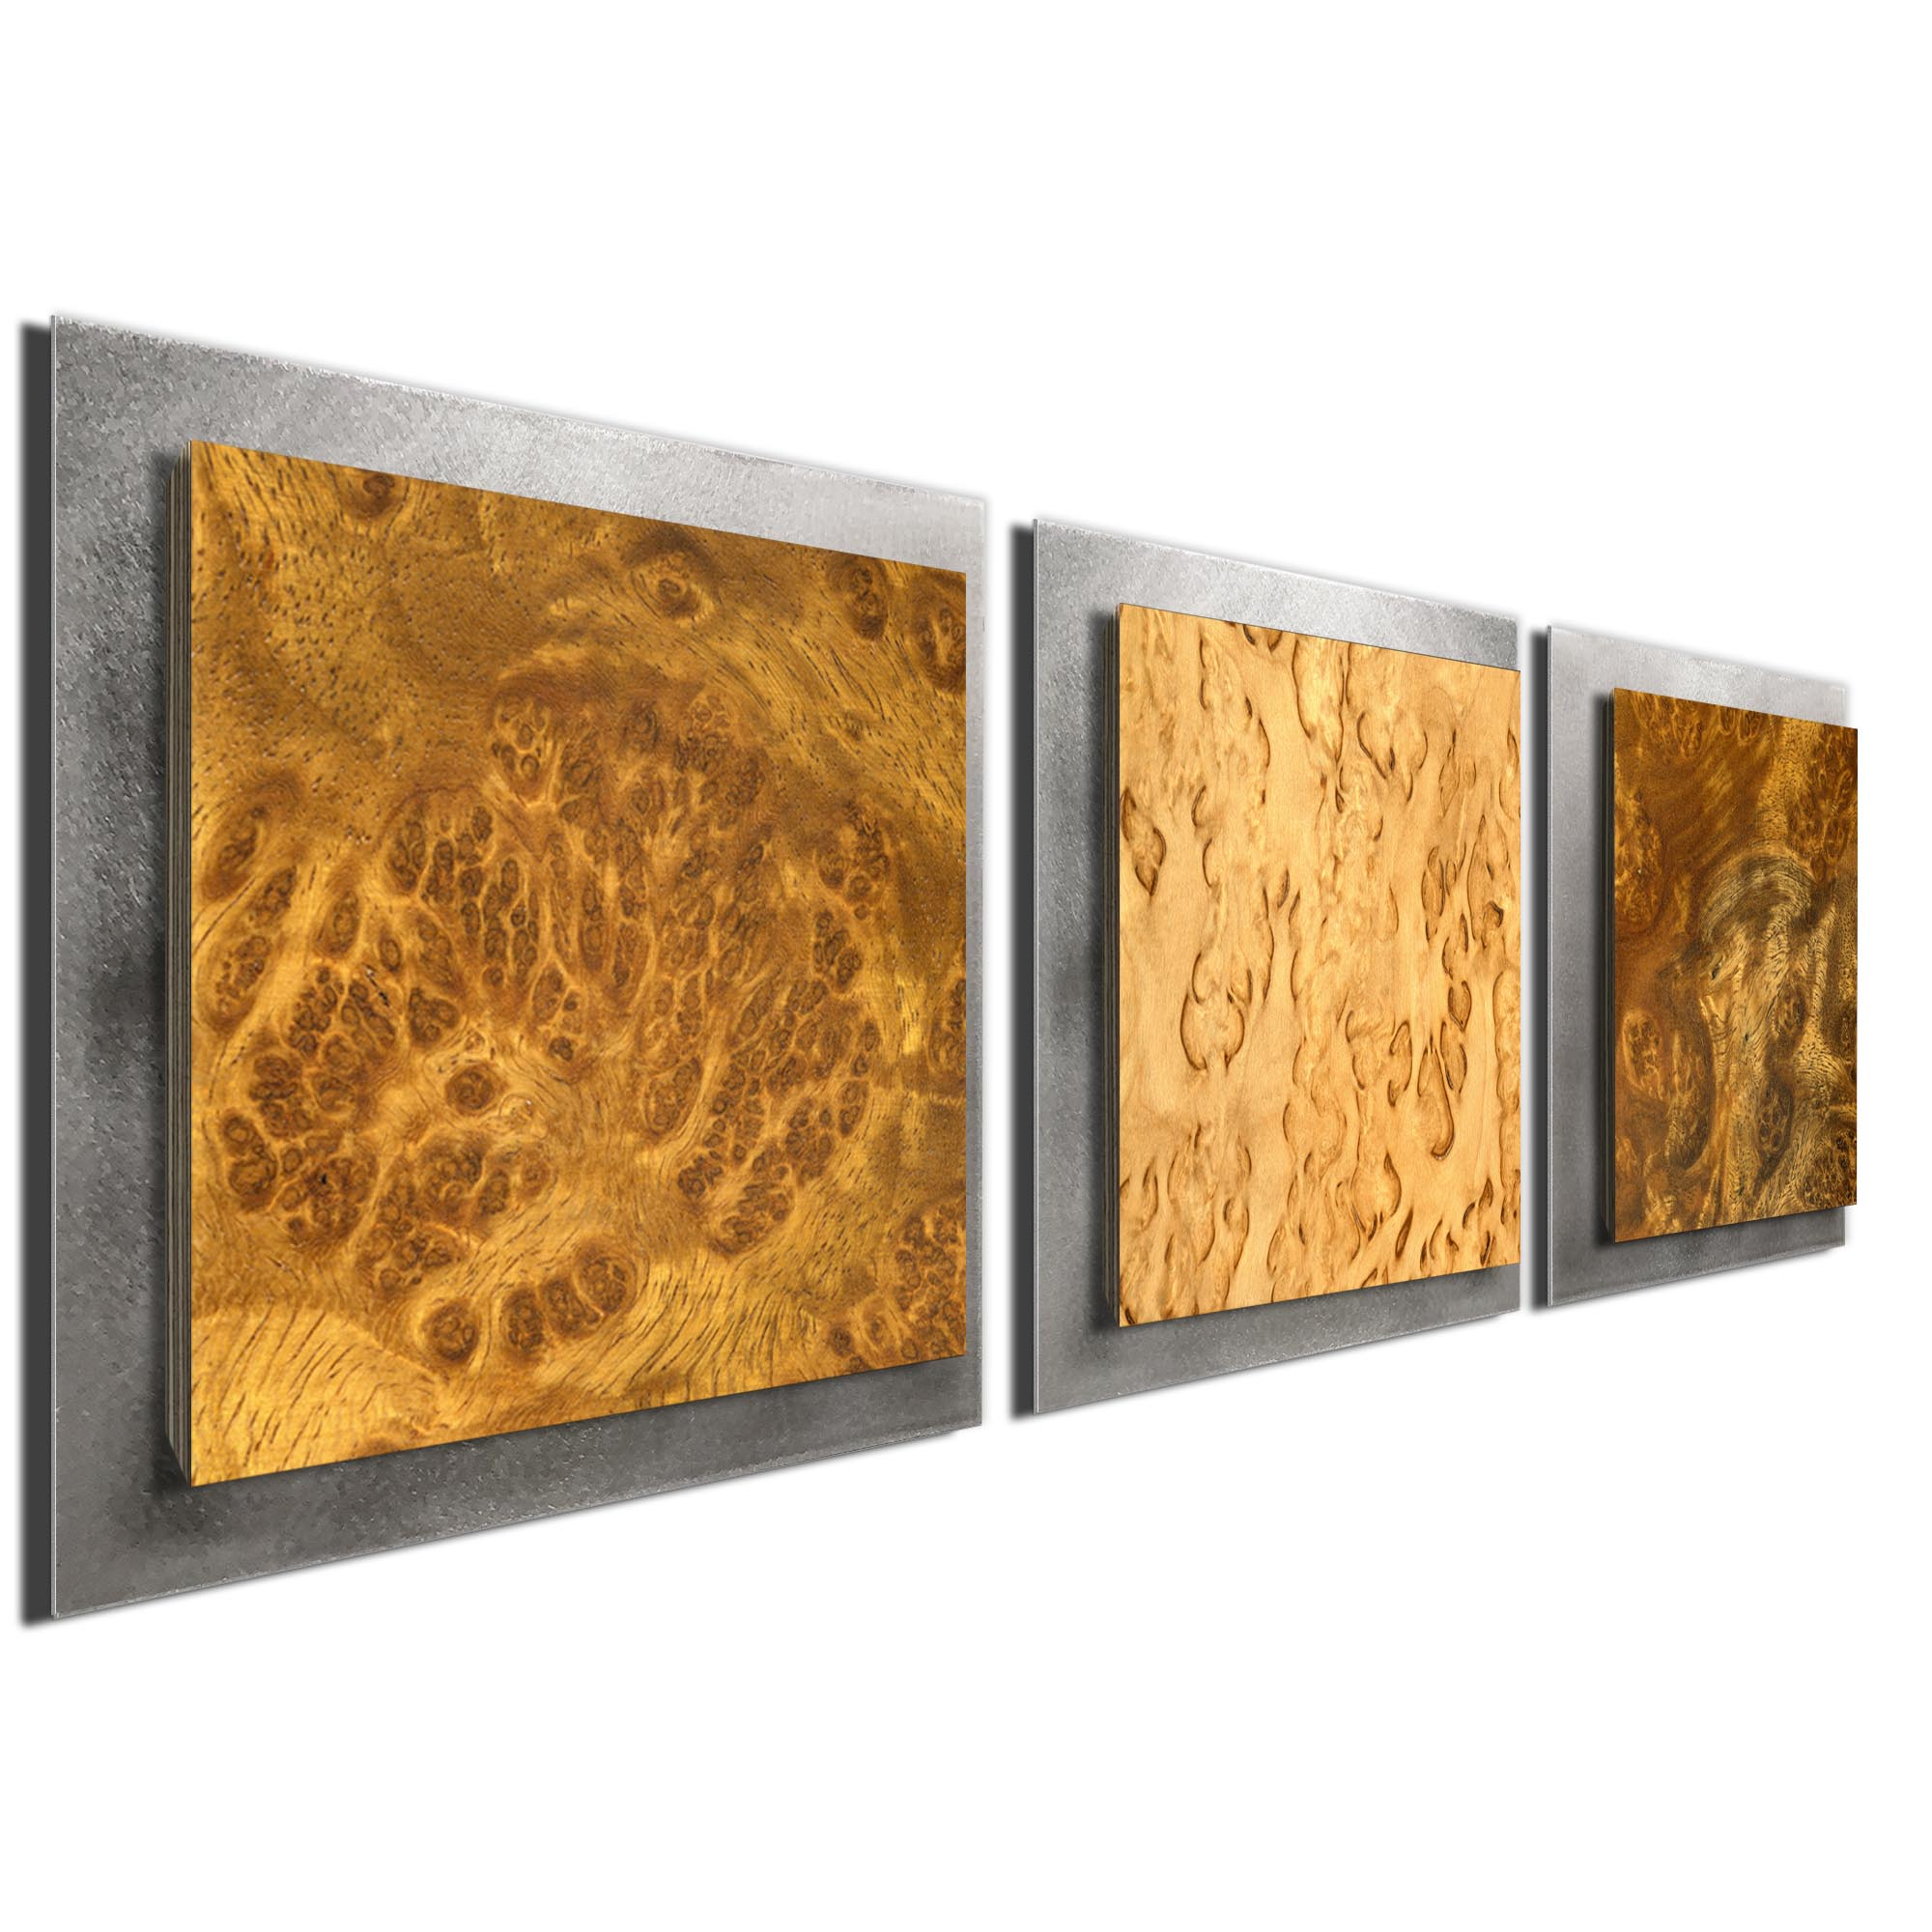 Flame Burl Essence Silver by Jackson Wright Rustic Modern Style Wood Wall Art - Image 2